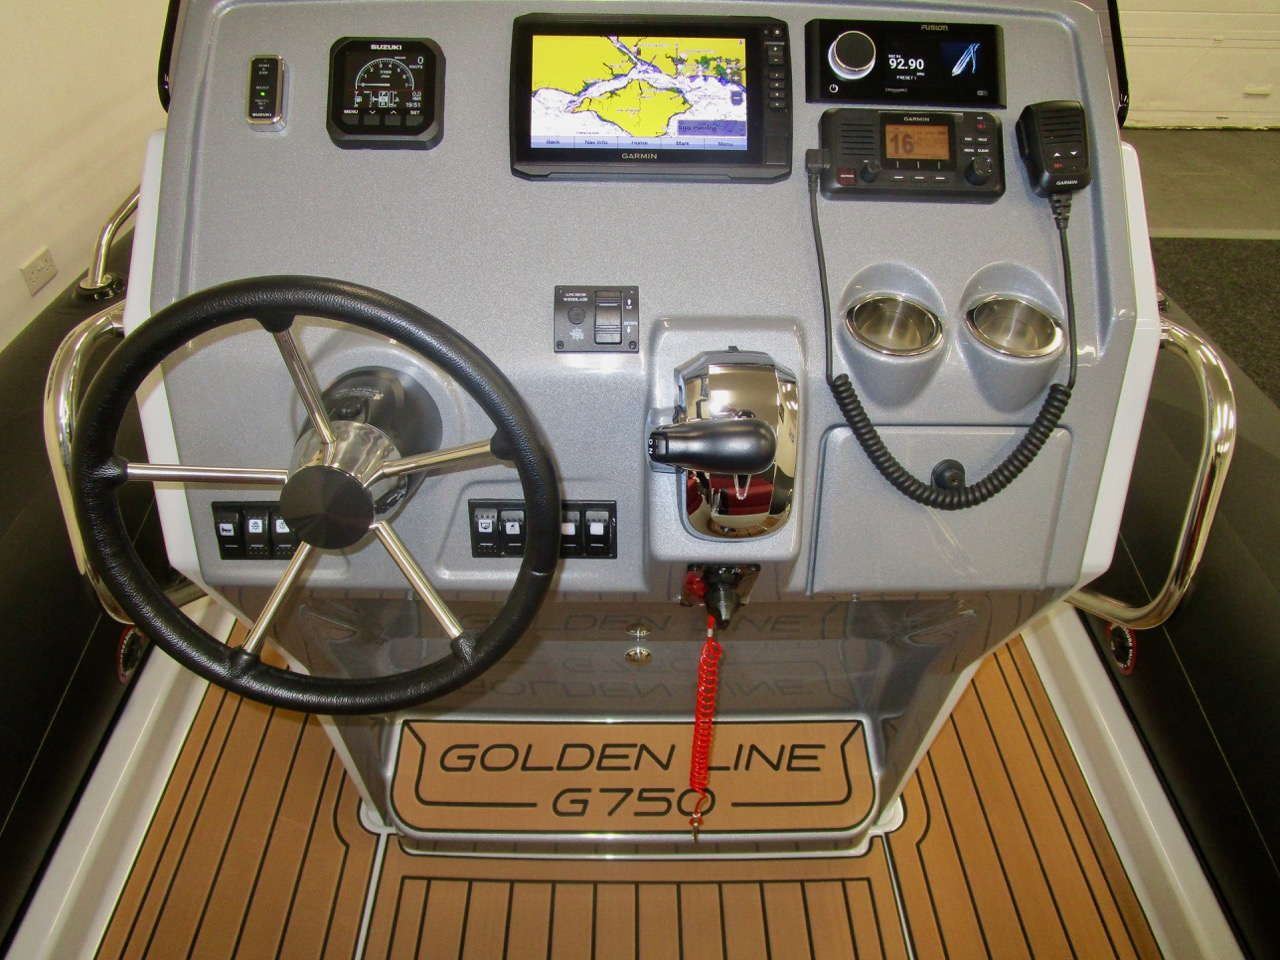 GRAND G750 RIB console helm position, instruments on